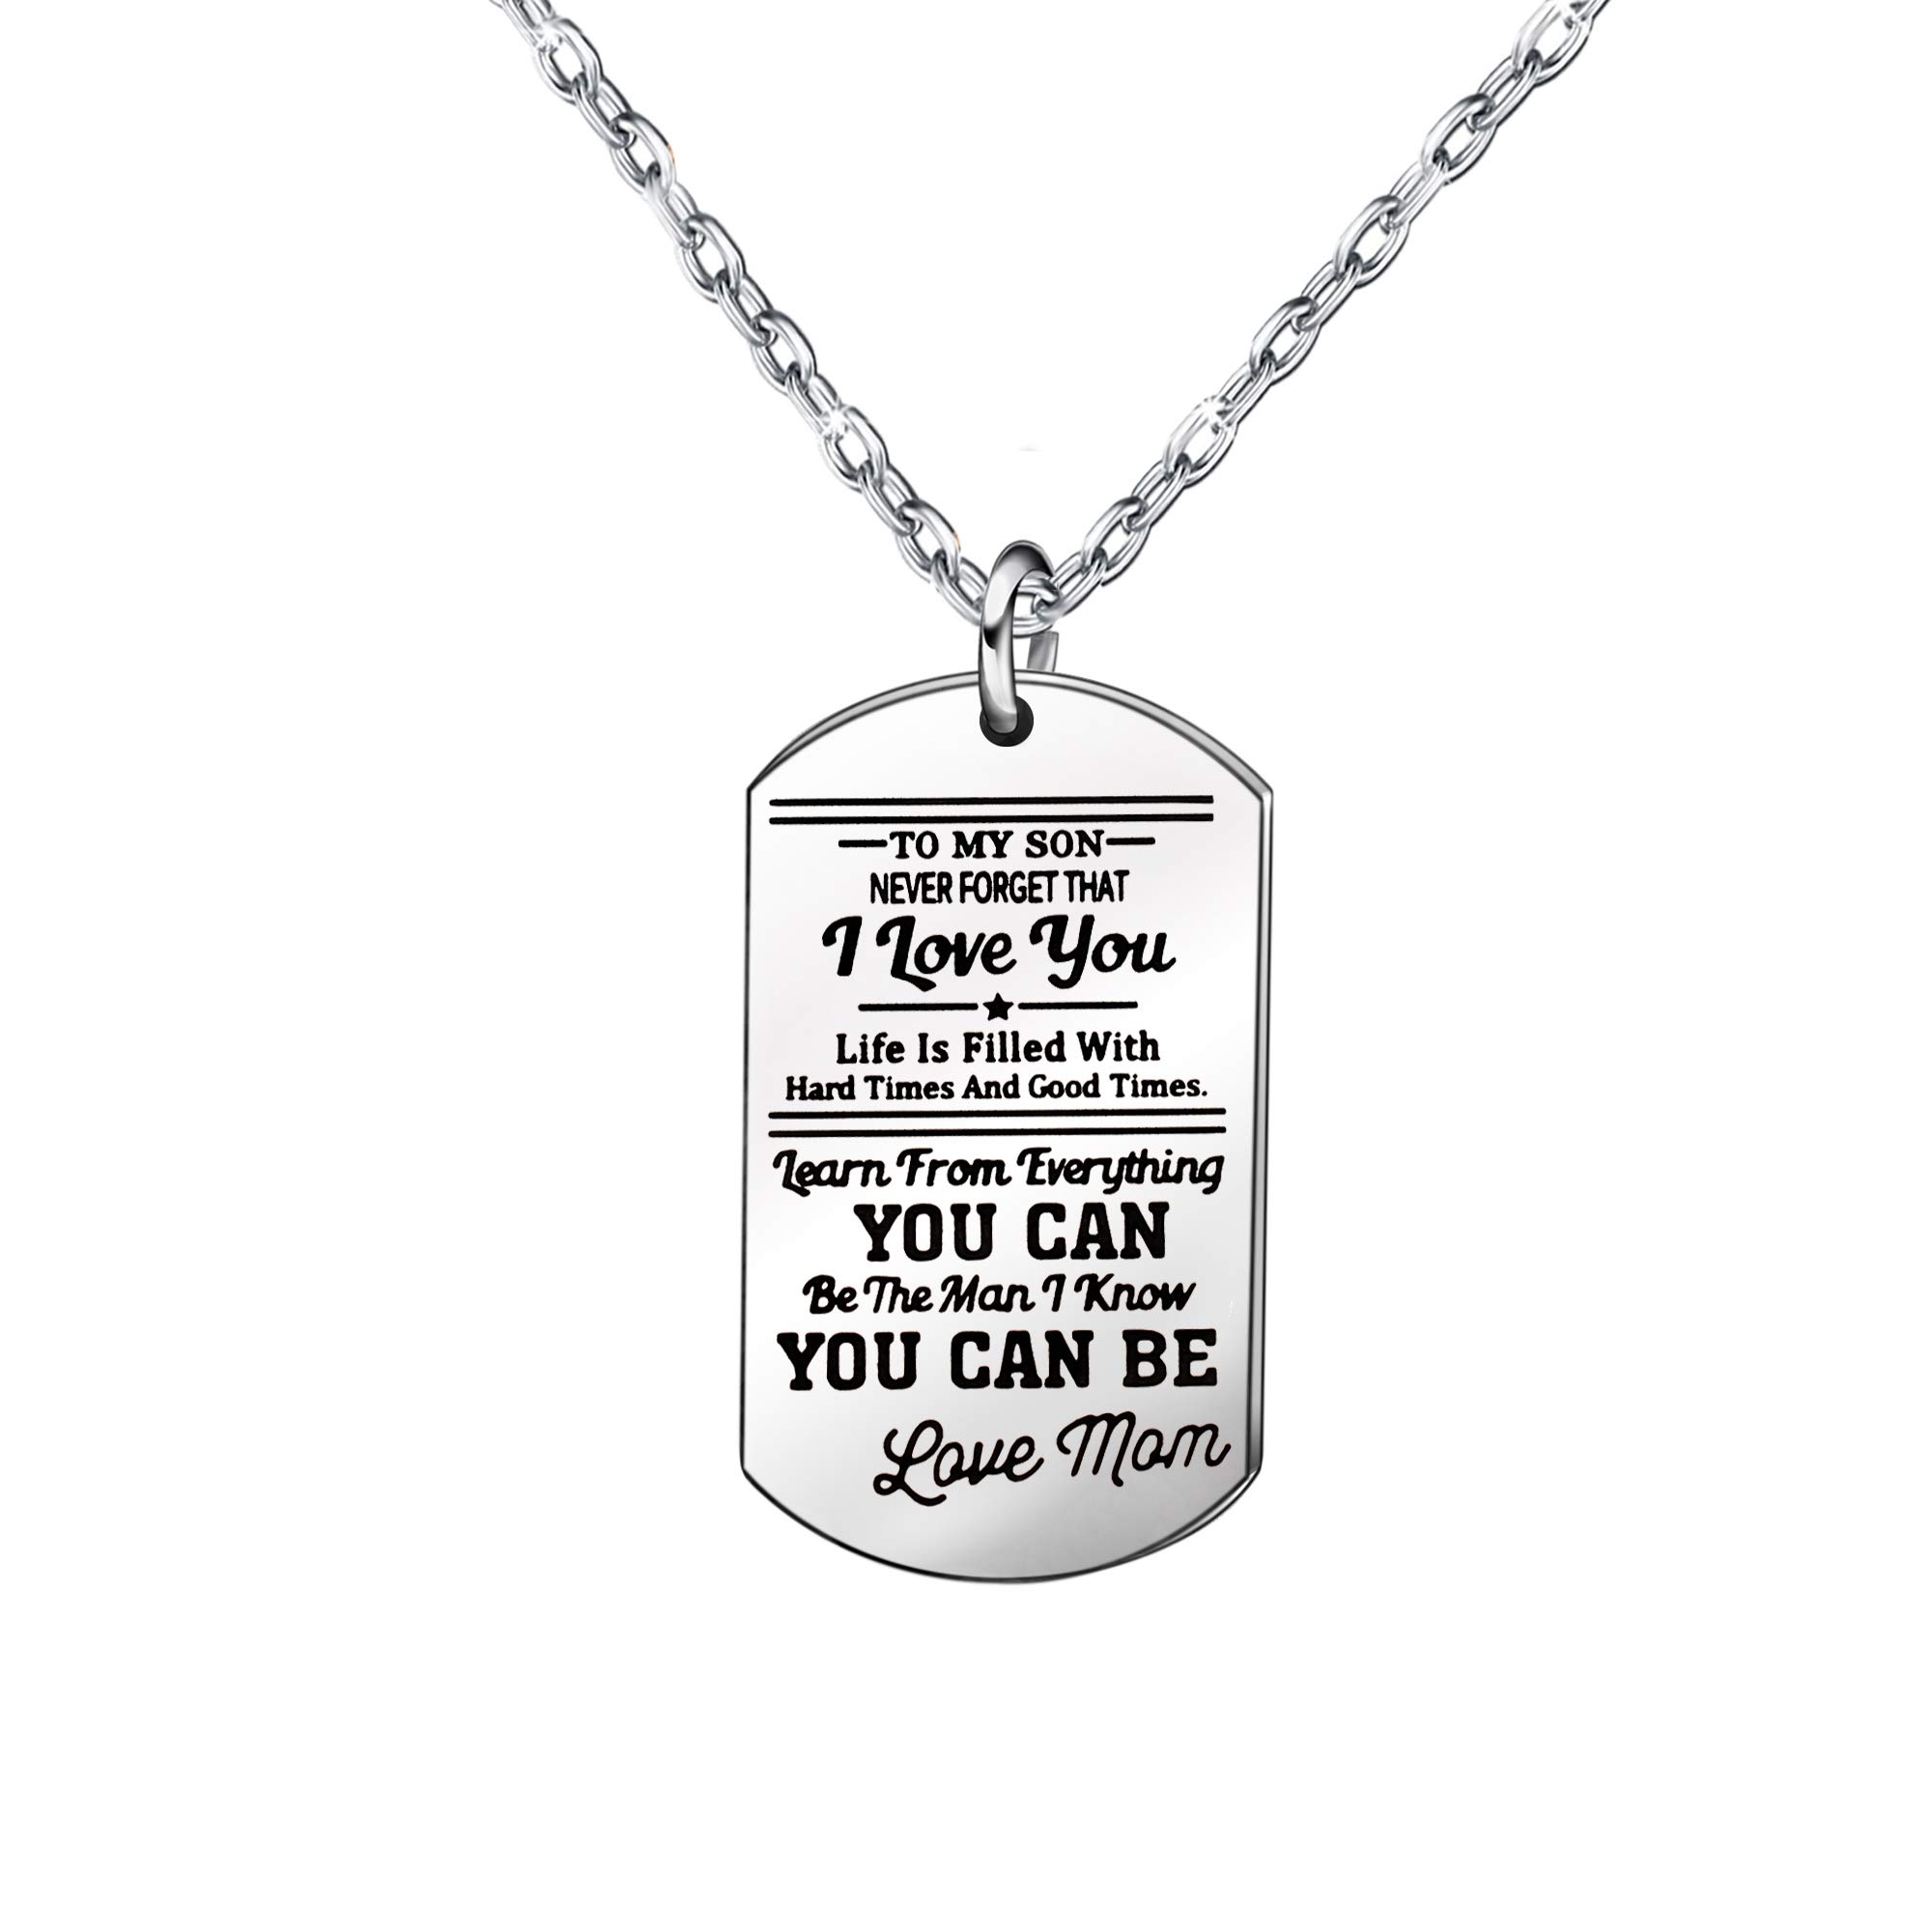 Gifts for Son – Silver Long Chain Necklaces Stainless Steel,Graduation Gift,Birthday Gift for Kids